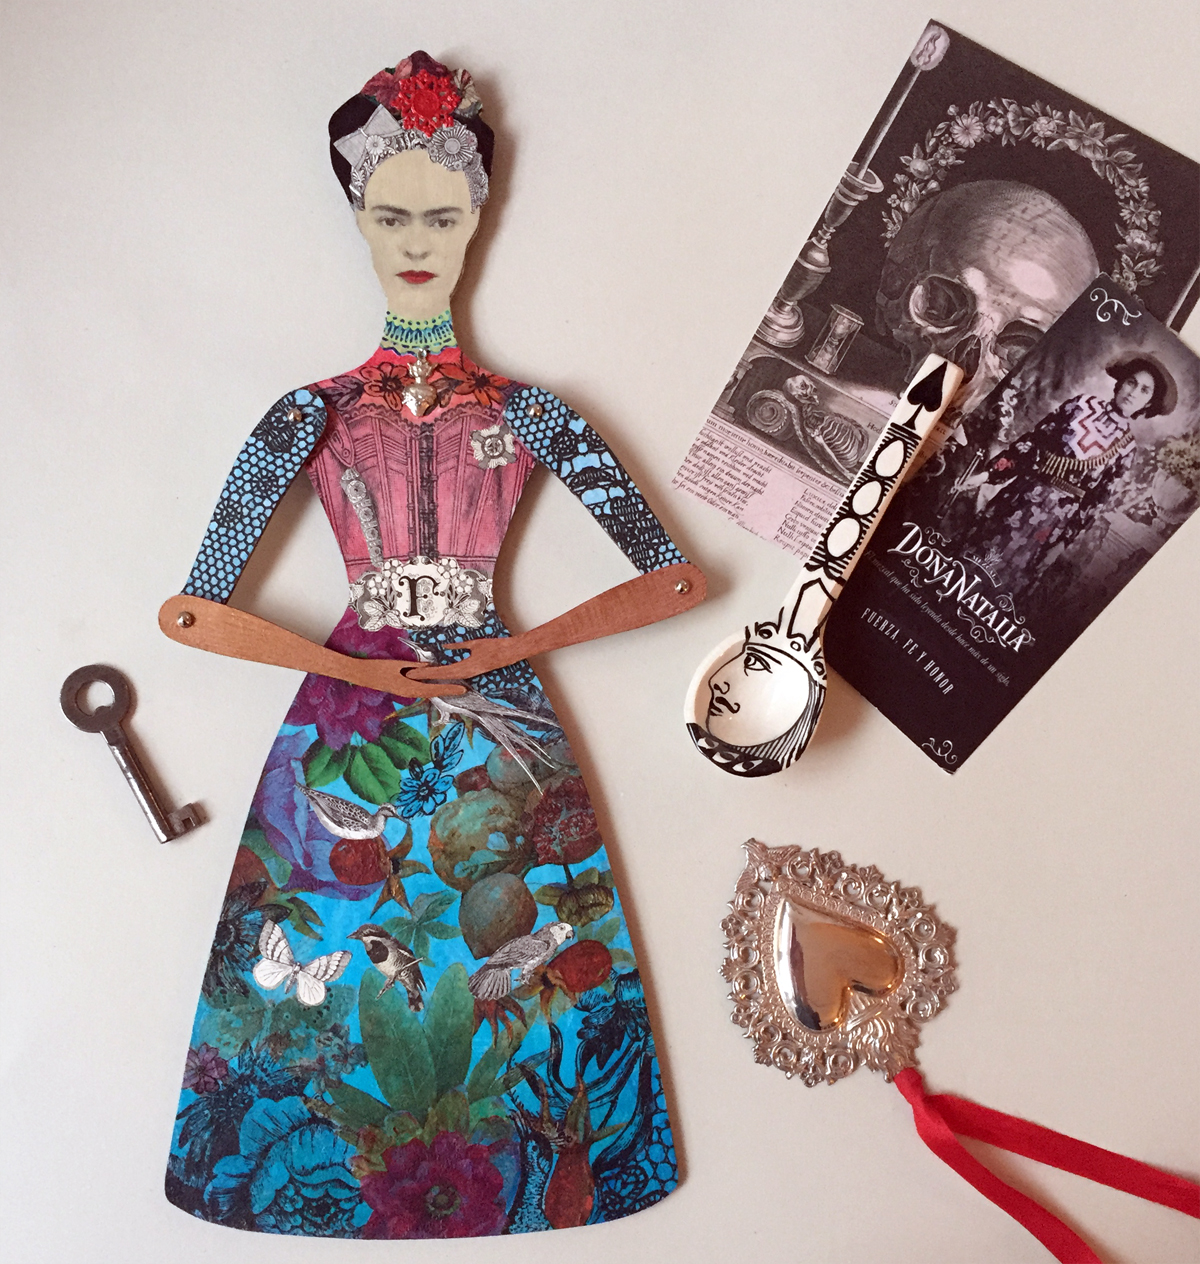 Frida Kahlo doll by Gabriela Szulman at 49 Peckarmans Wood, Dulwich Open House 2018